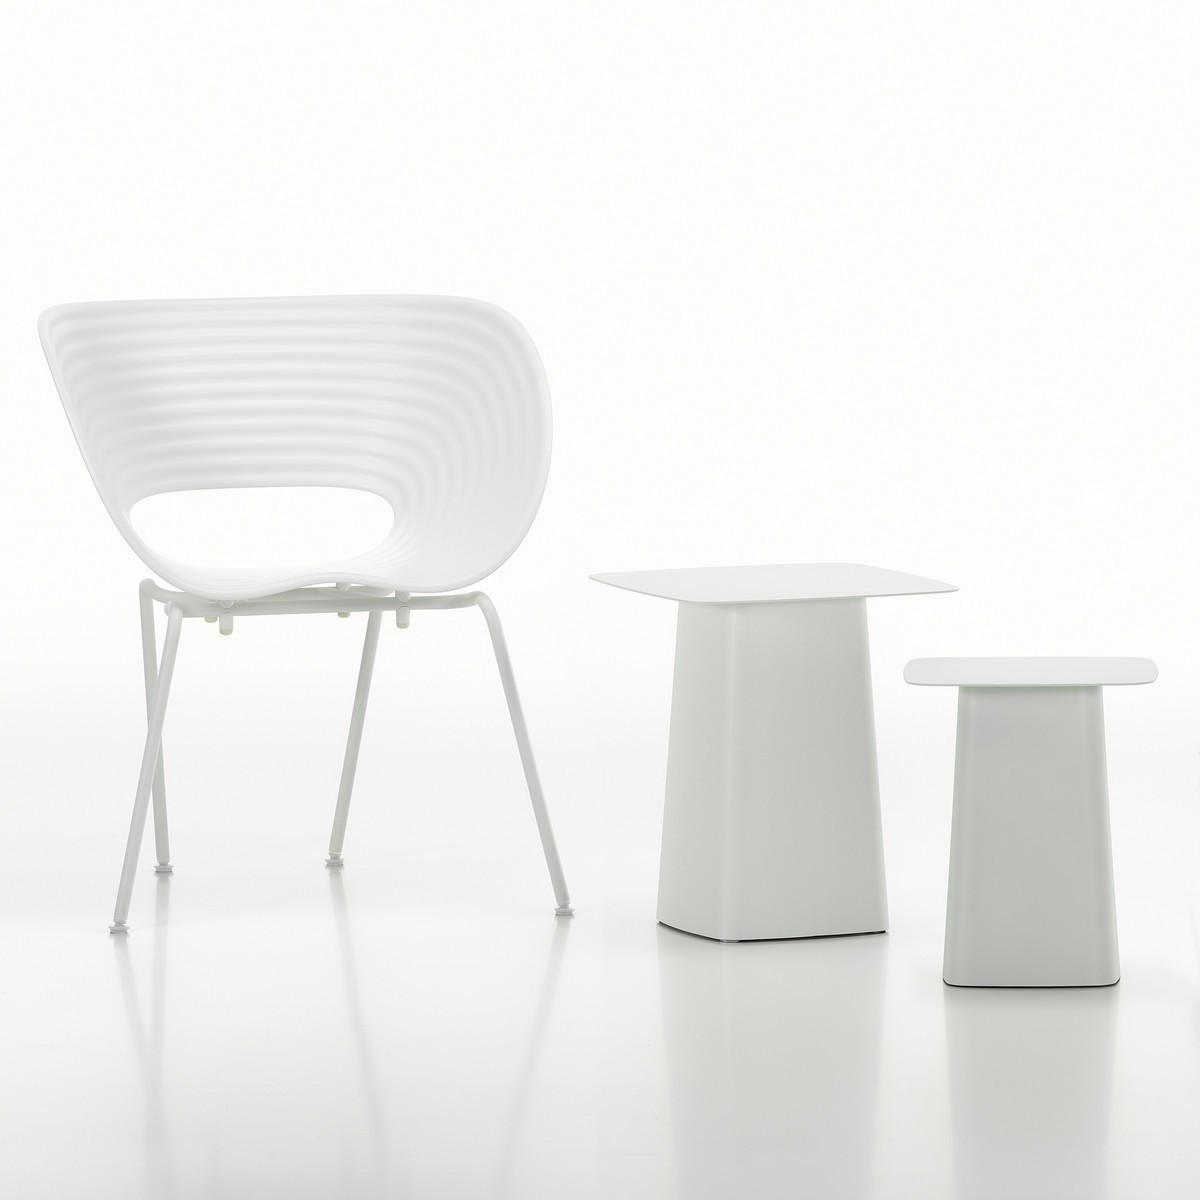 Stuhl Vitra Vitra Tom Vac Stuhl Weiss - White Collection | Von Goodform.ch